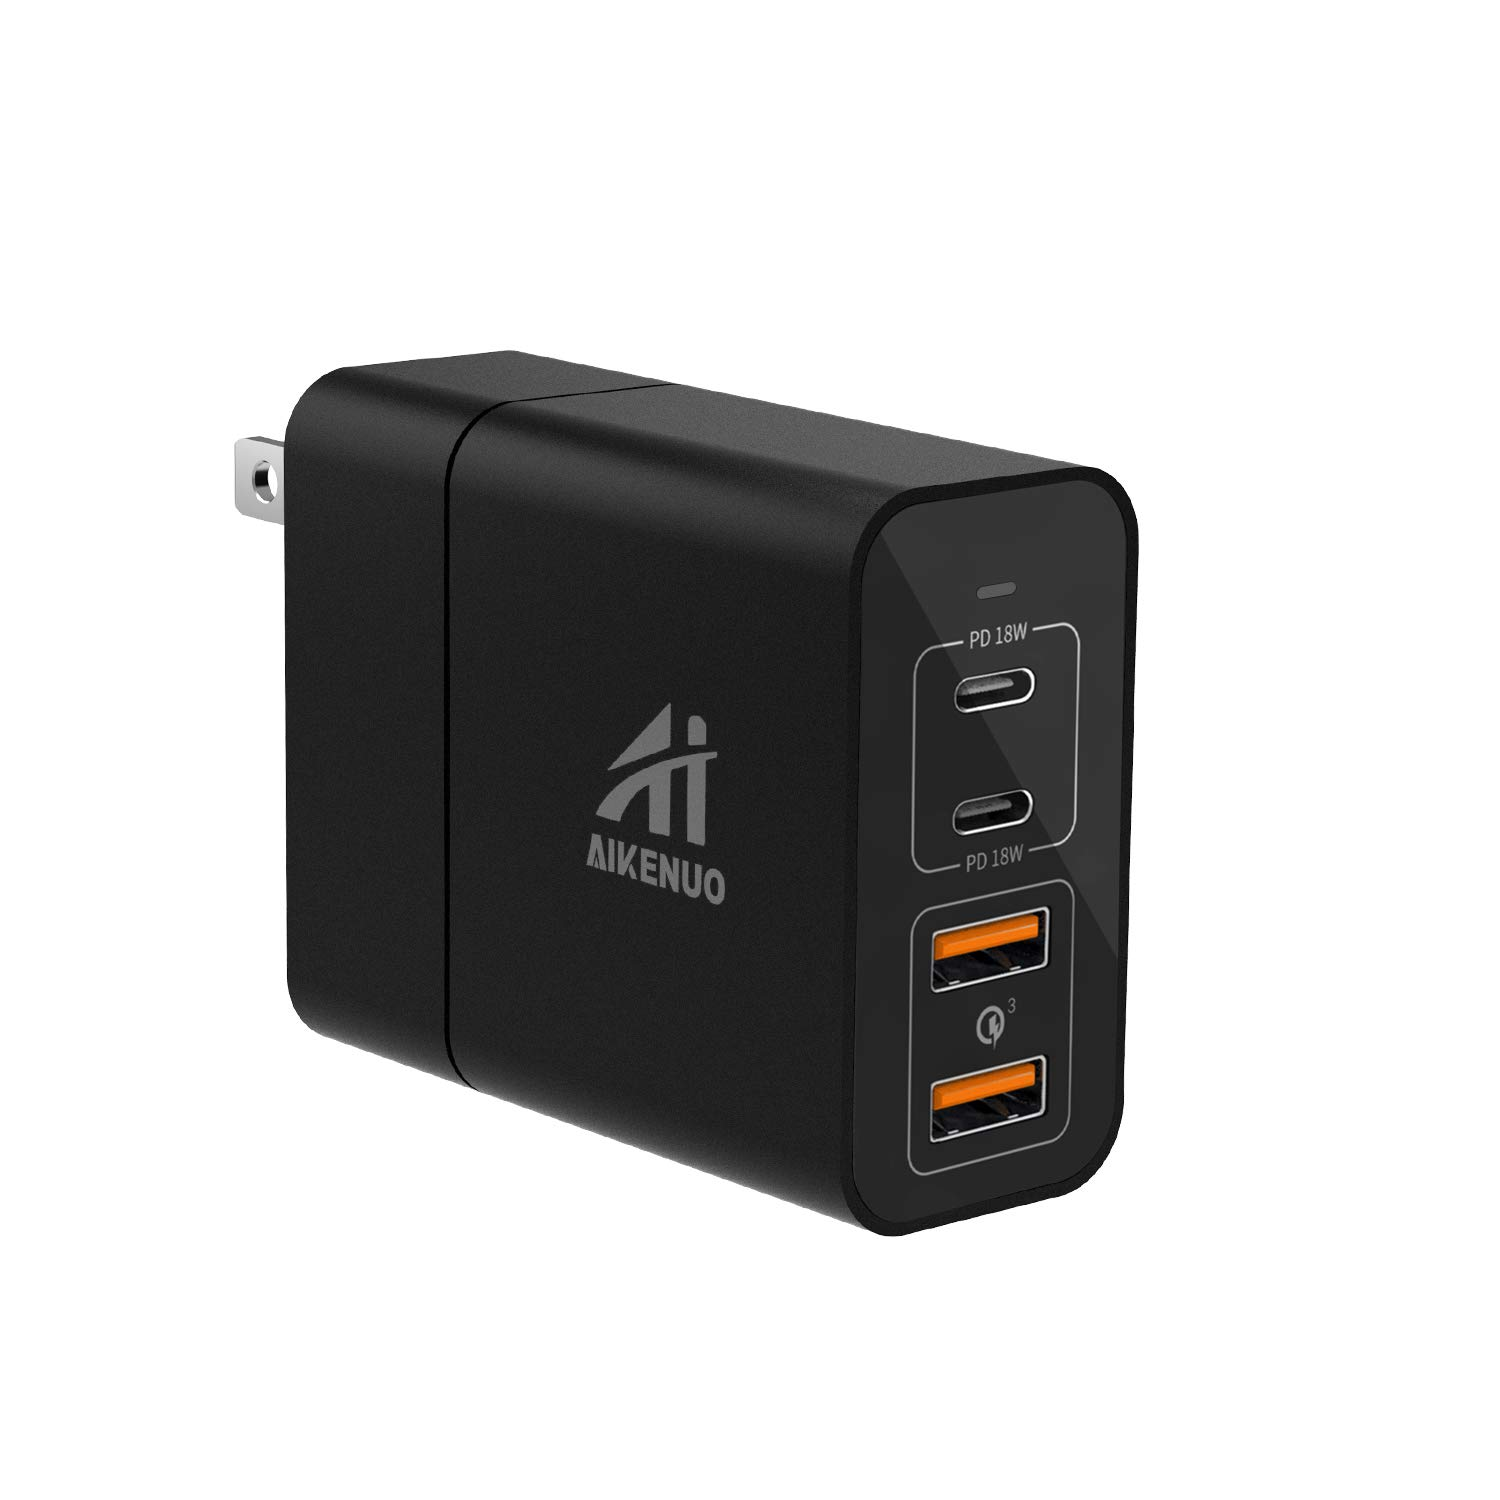 USB C Charger, AI AIKENUO 48W Fast Charging PD Wall Chargers with Dual 18W Power Delivery 3.0& Quick Charge 3.0, Multi Port USB-C Travel Adapter for Samsung Galaxy S10/S9/S8/Plus,iPhone Xs/Max/XR